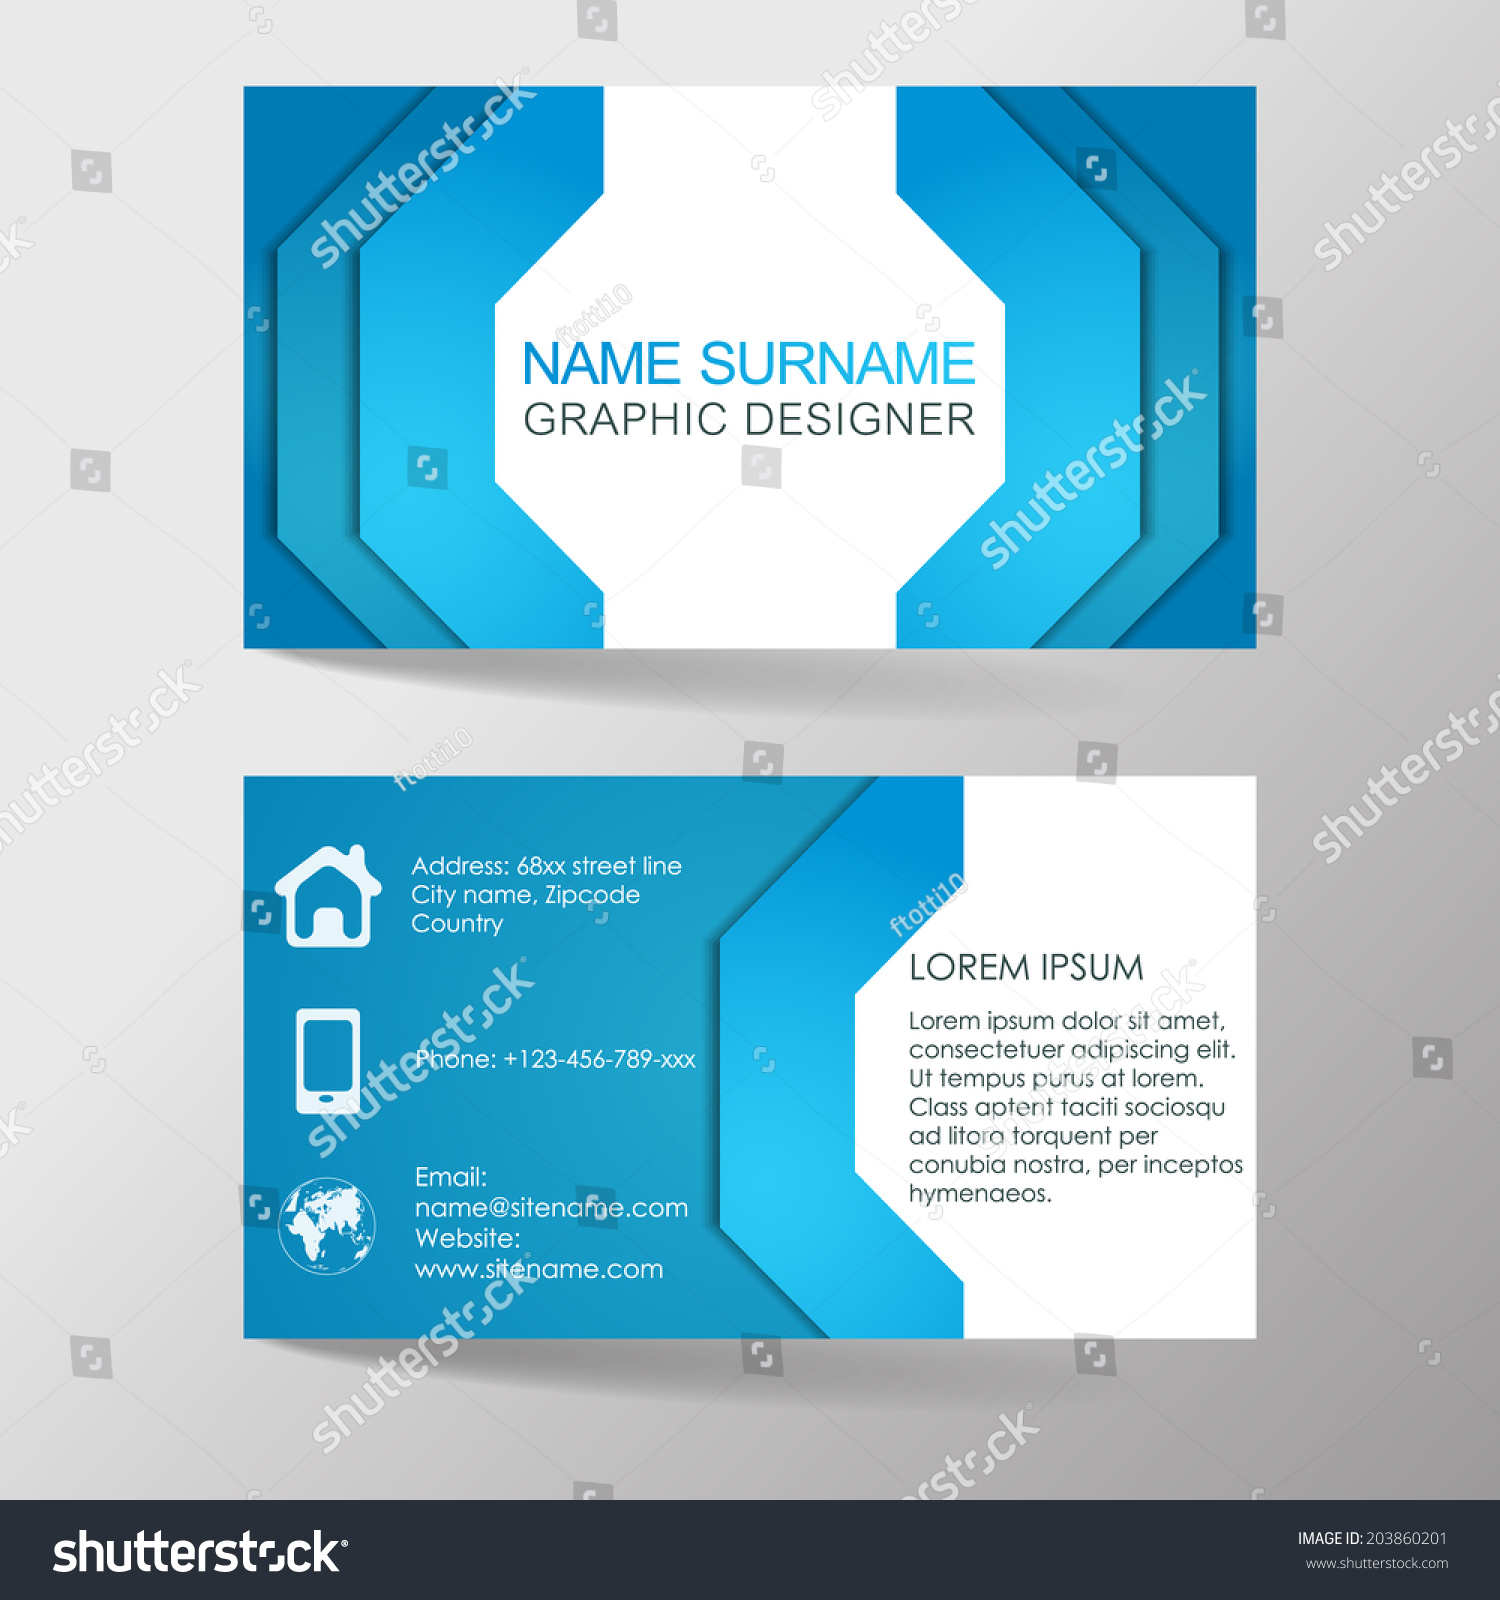 Presentation business card gidiyedformapolitica presentation business card accmission Gallery